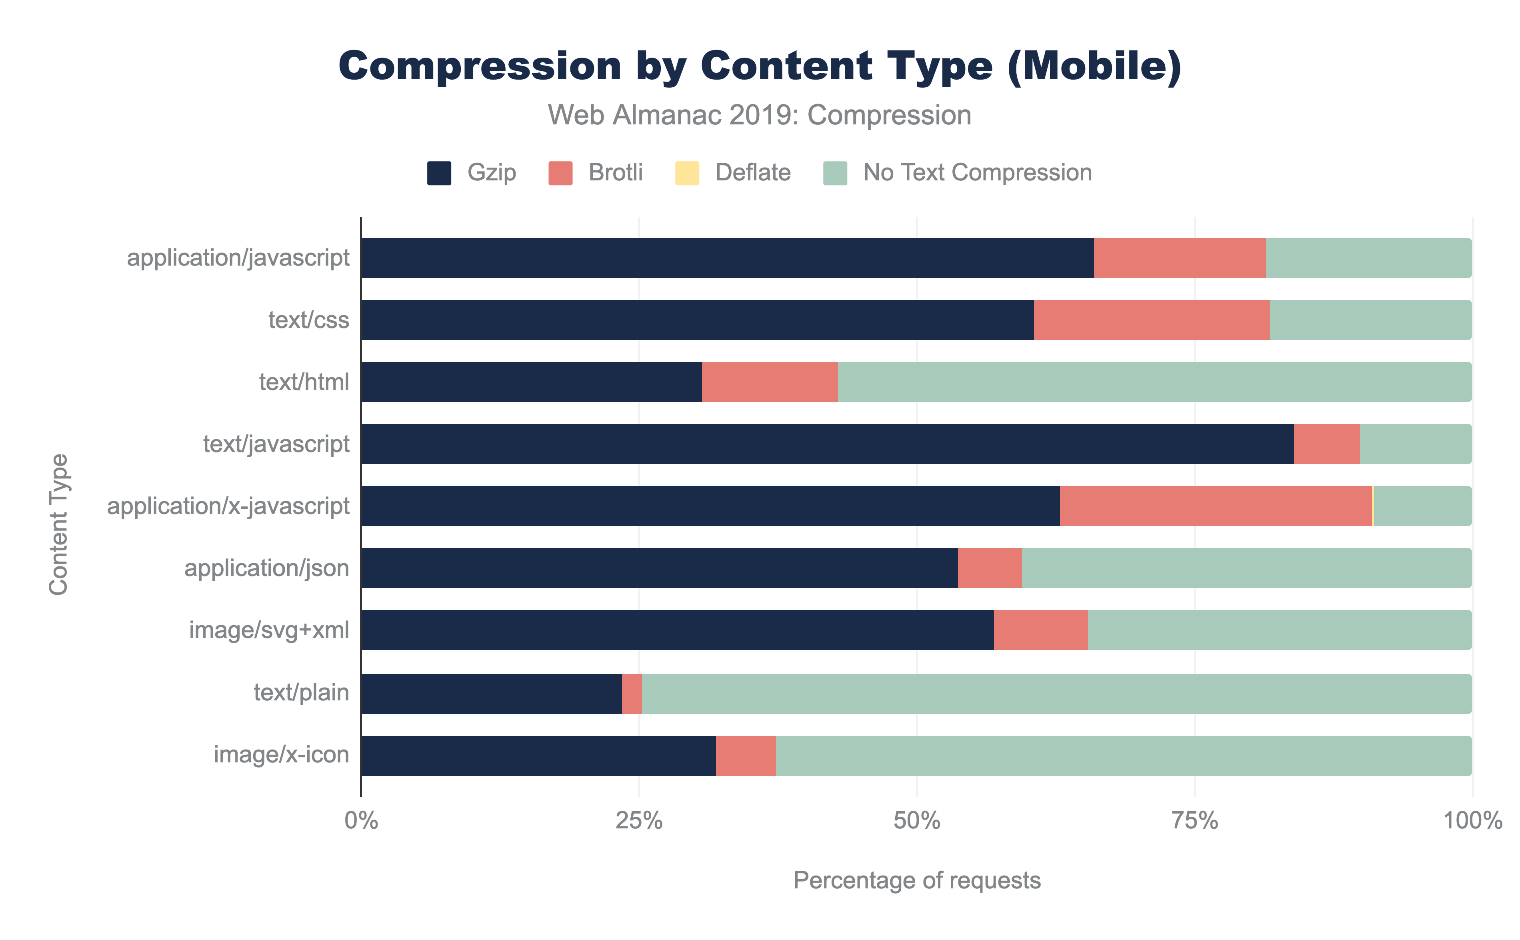 Compression by content type as a percent for mobile.